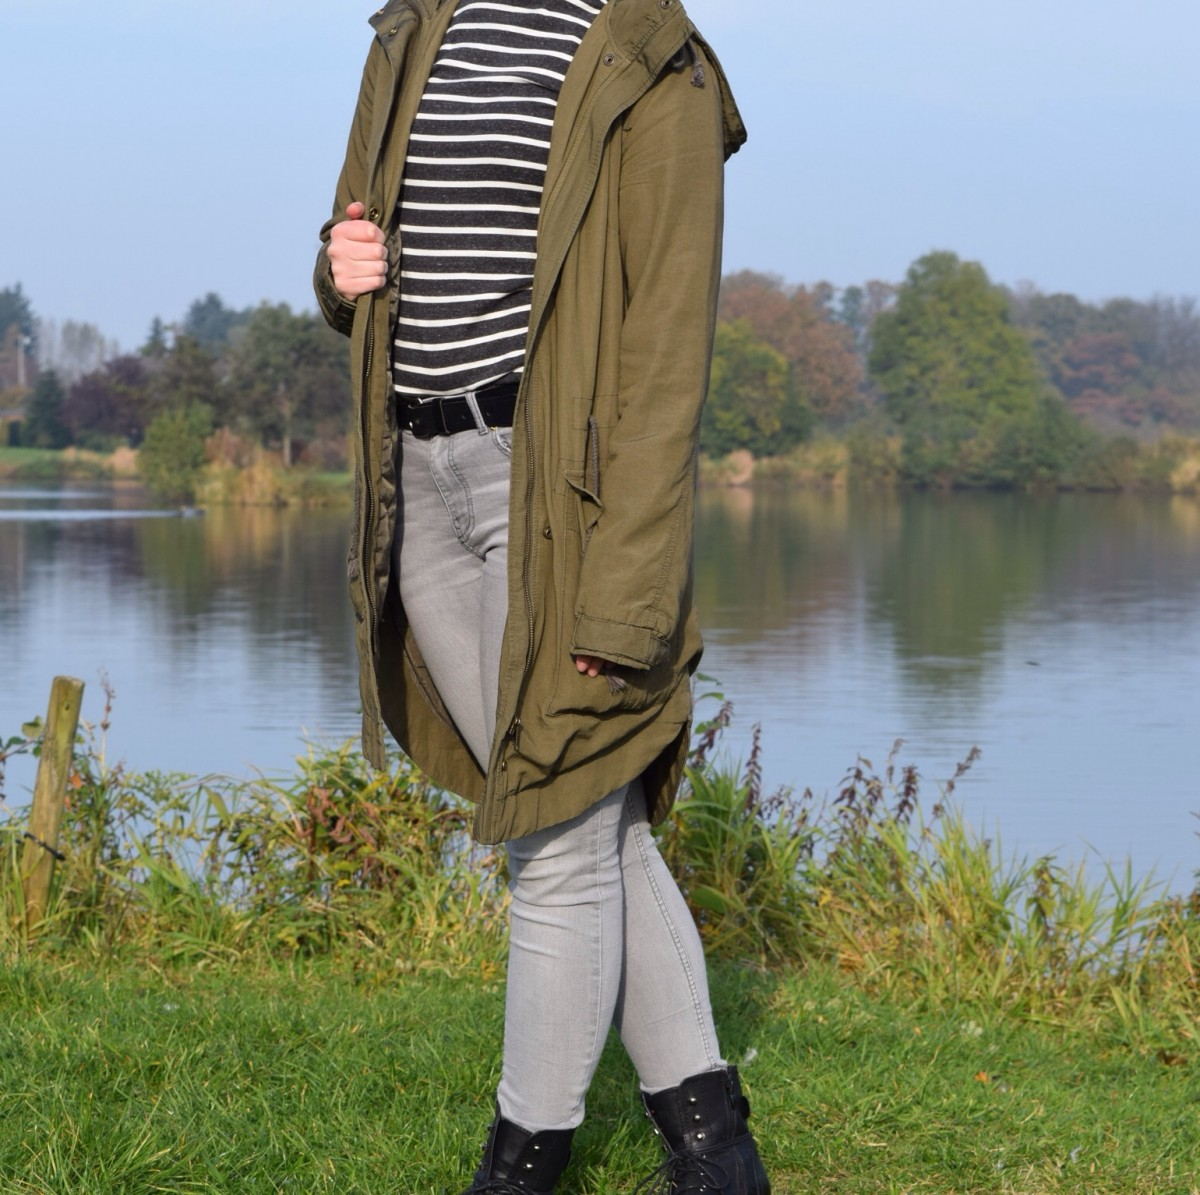 parka-graue-jeans-gestreifter-pullover-boots-teich-swanted